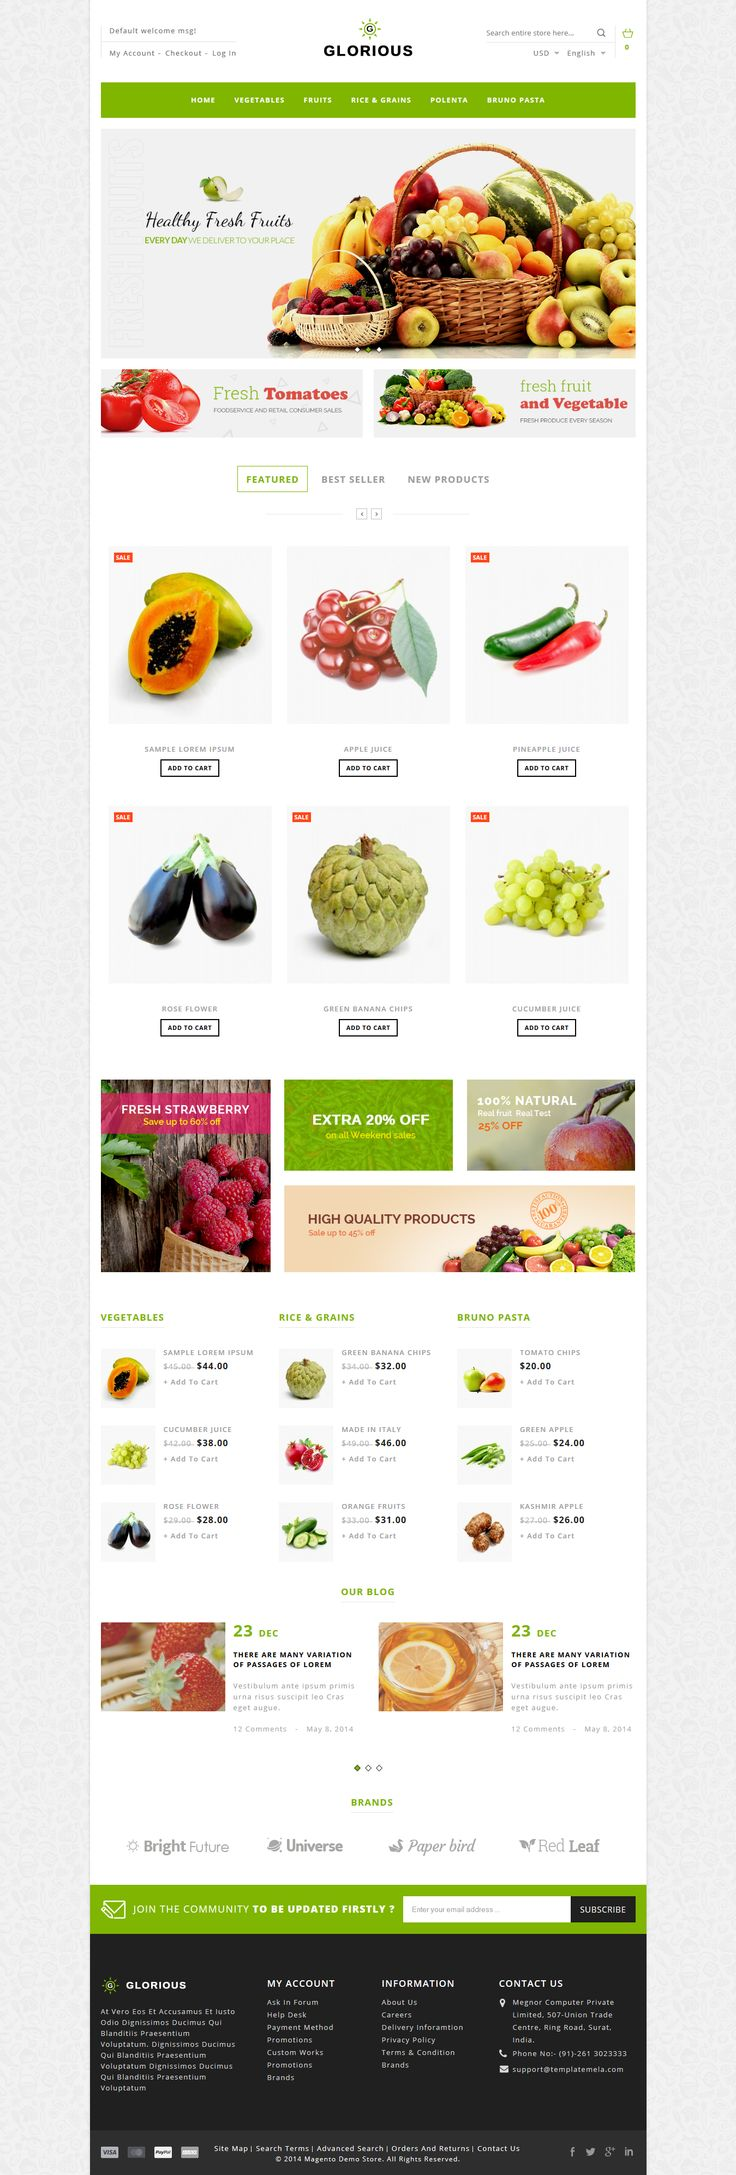 Glorious #Magento Responsive Theme is specially designed for fashion design, electronics, mobile, #foods, jewellery, tools, auto & spare parts and multi purpose stores. #website #vegetable #fruits